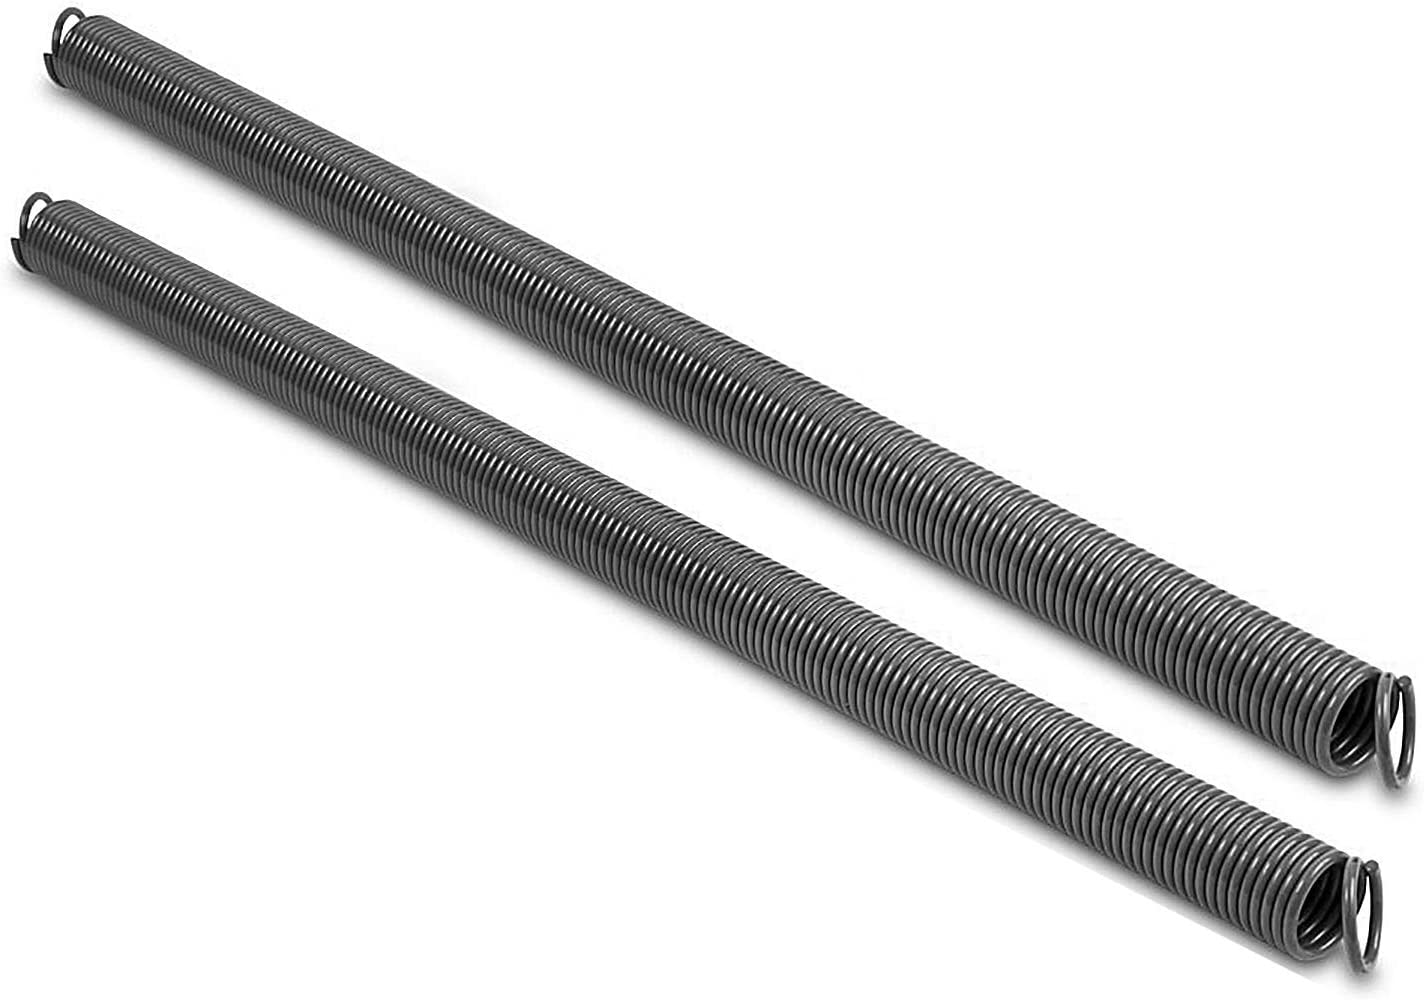 Renewed Heavy Duty Replacement Extension Garage Door Spring Stretch Spring 2-Pack(140 lb